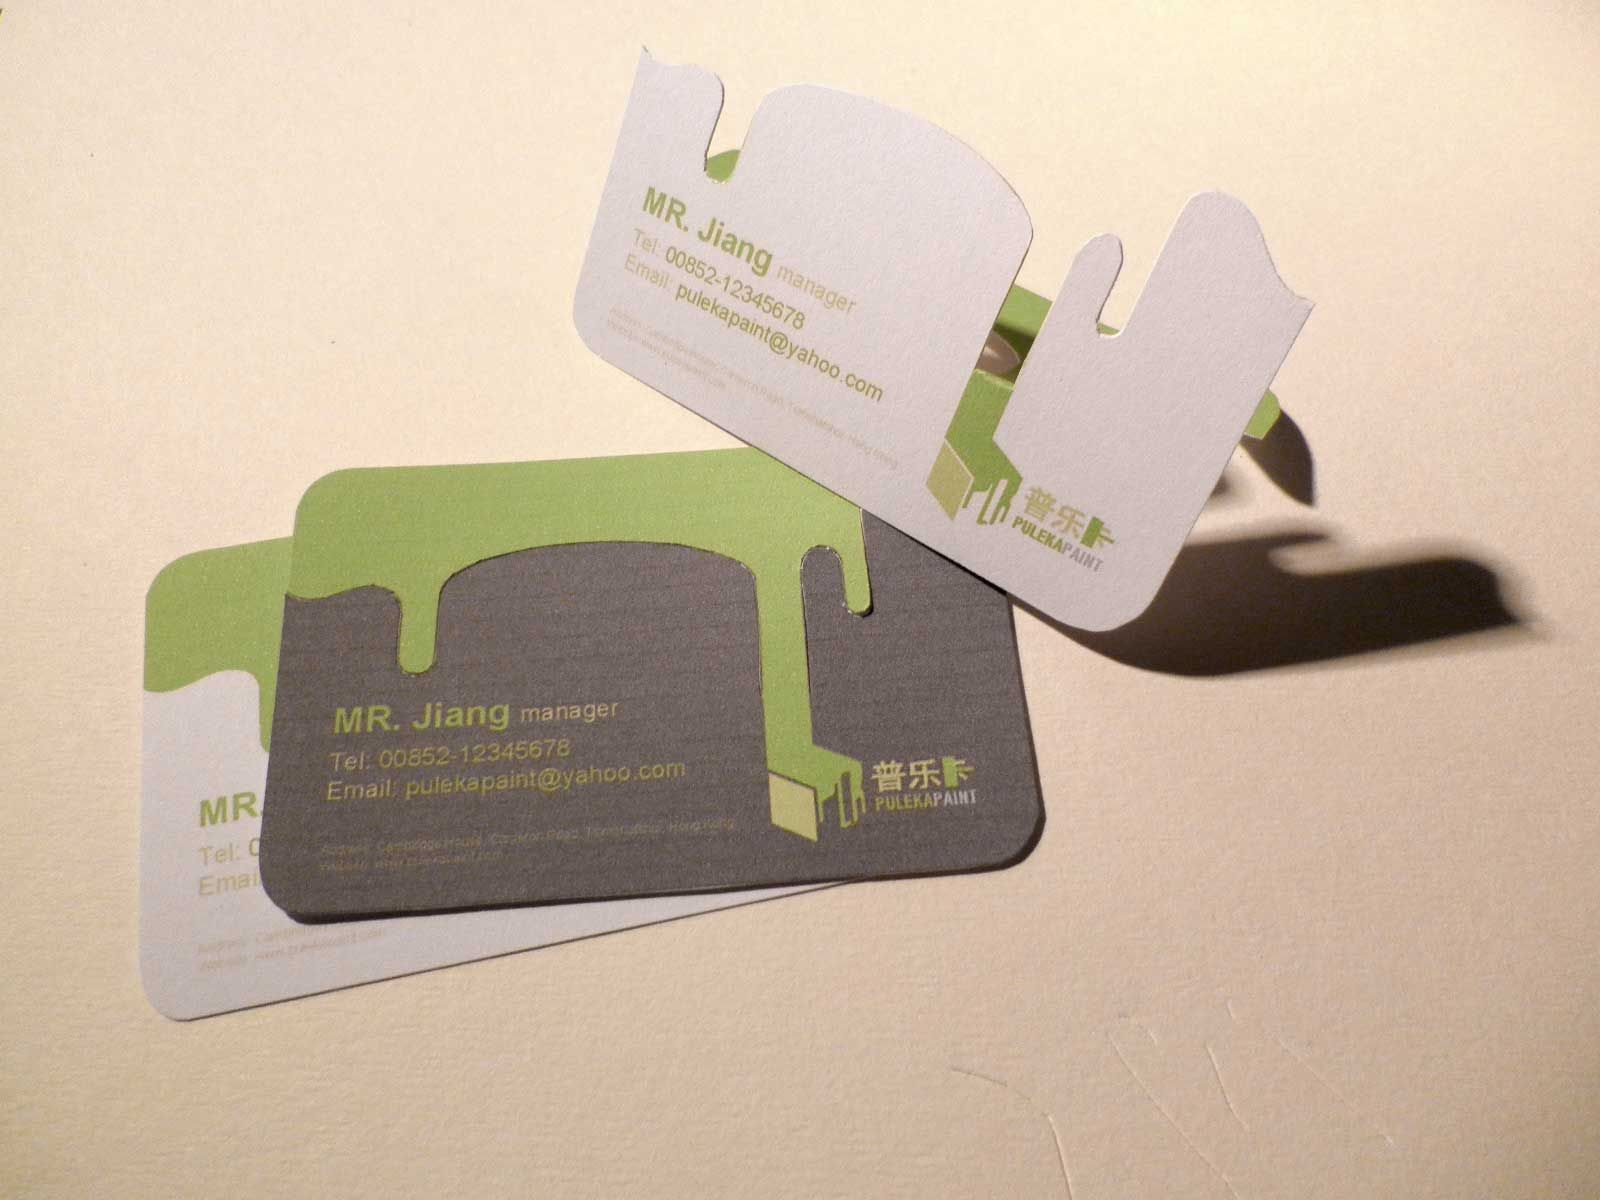 Image result for examples of mobile massage therapy business cards ...